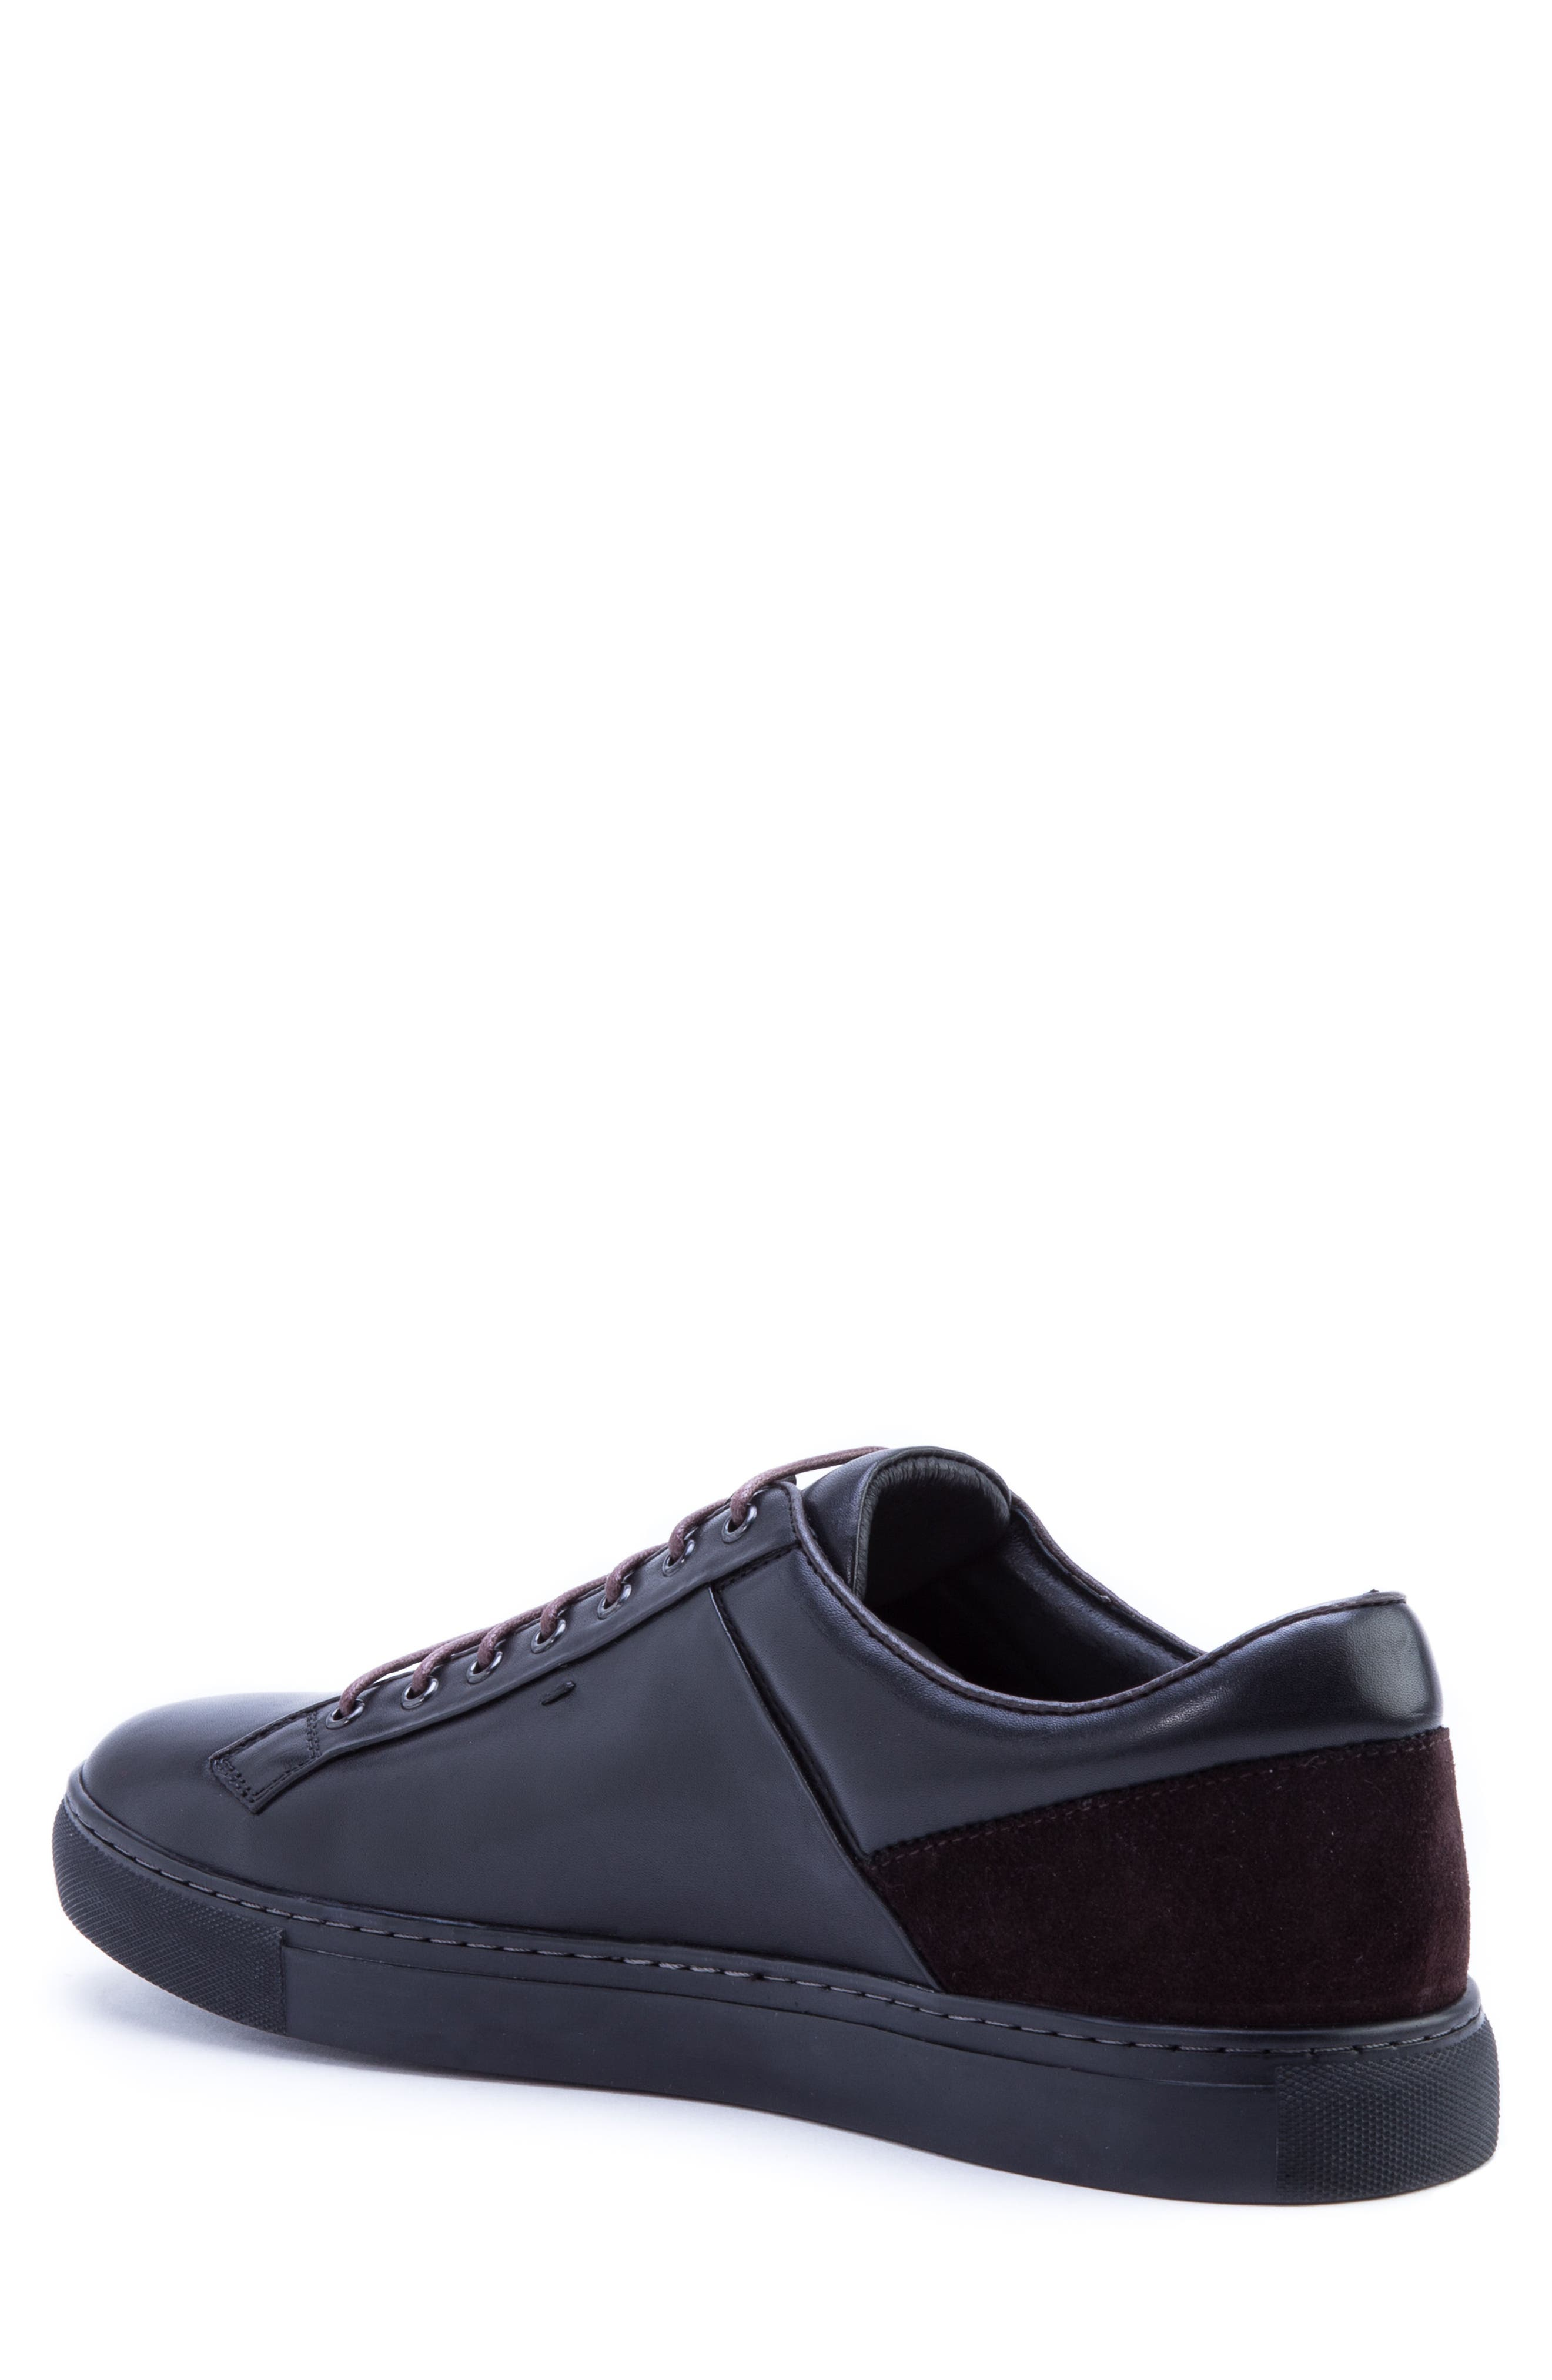 Pitch Low Top Sneaker,                             Alternate thumbnail 2, color,                             BLACK LEATHER/ SUEDE